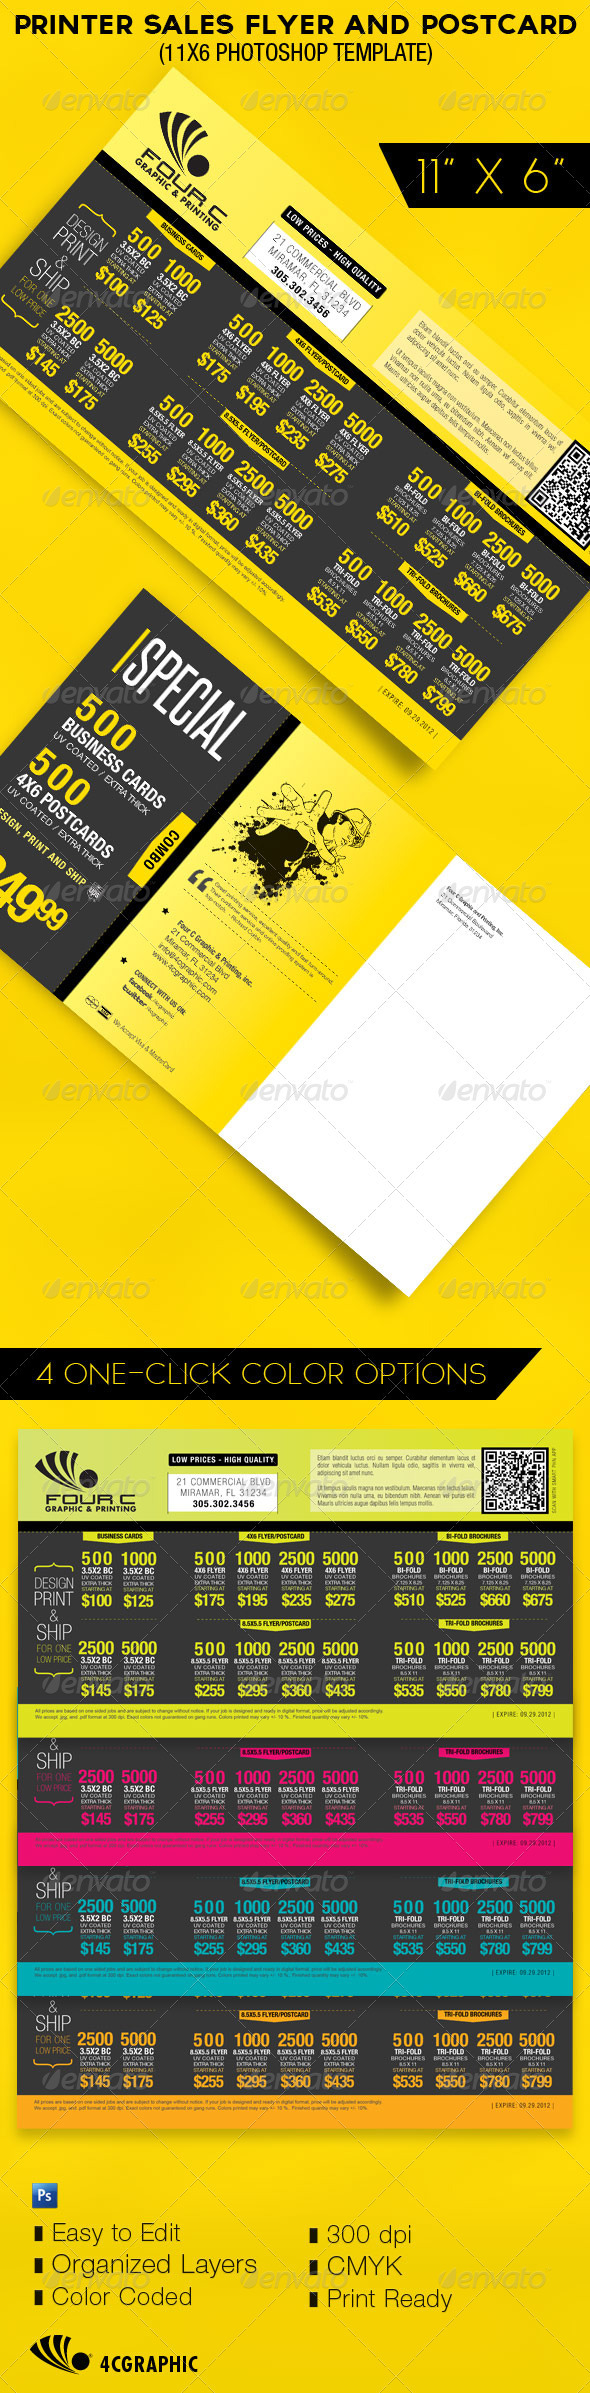 Printer Sales Flyer and Postcard Template - Commerce Flyers